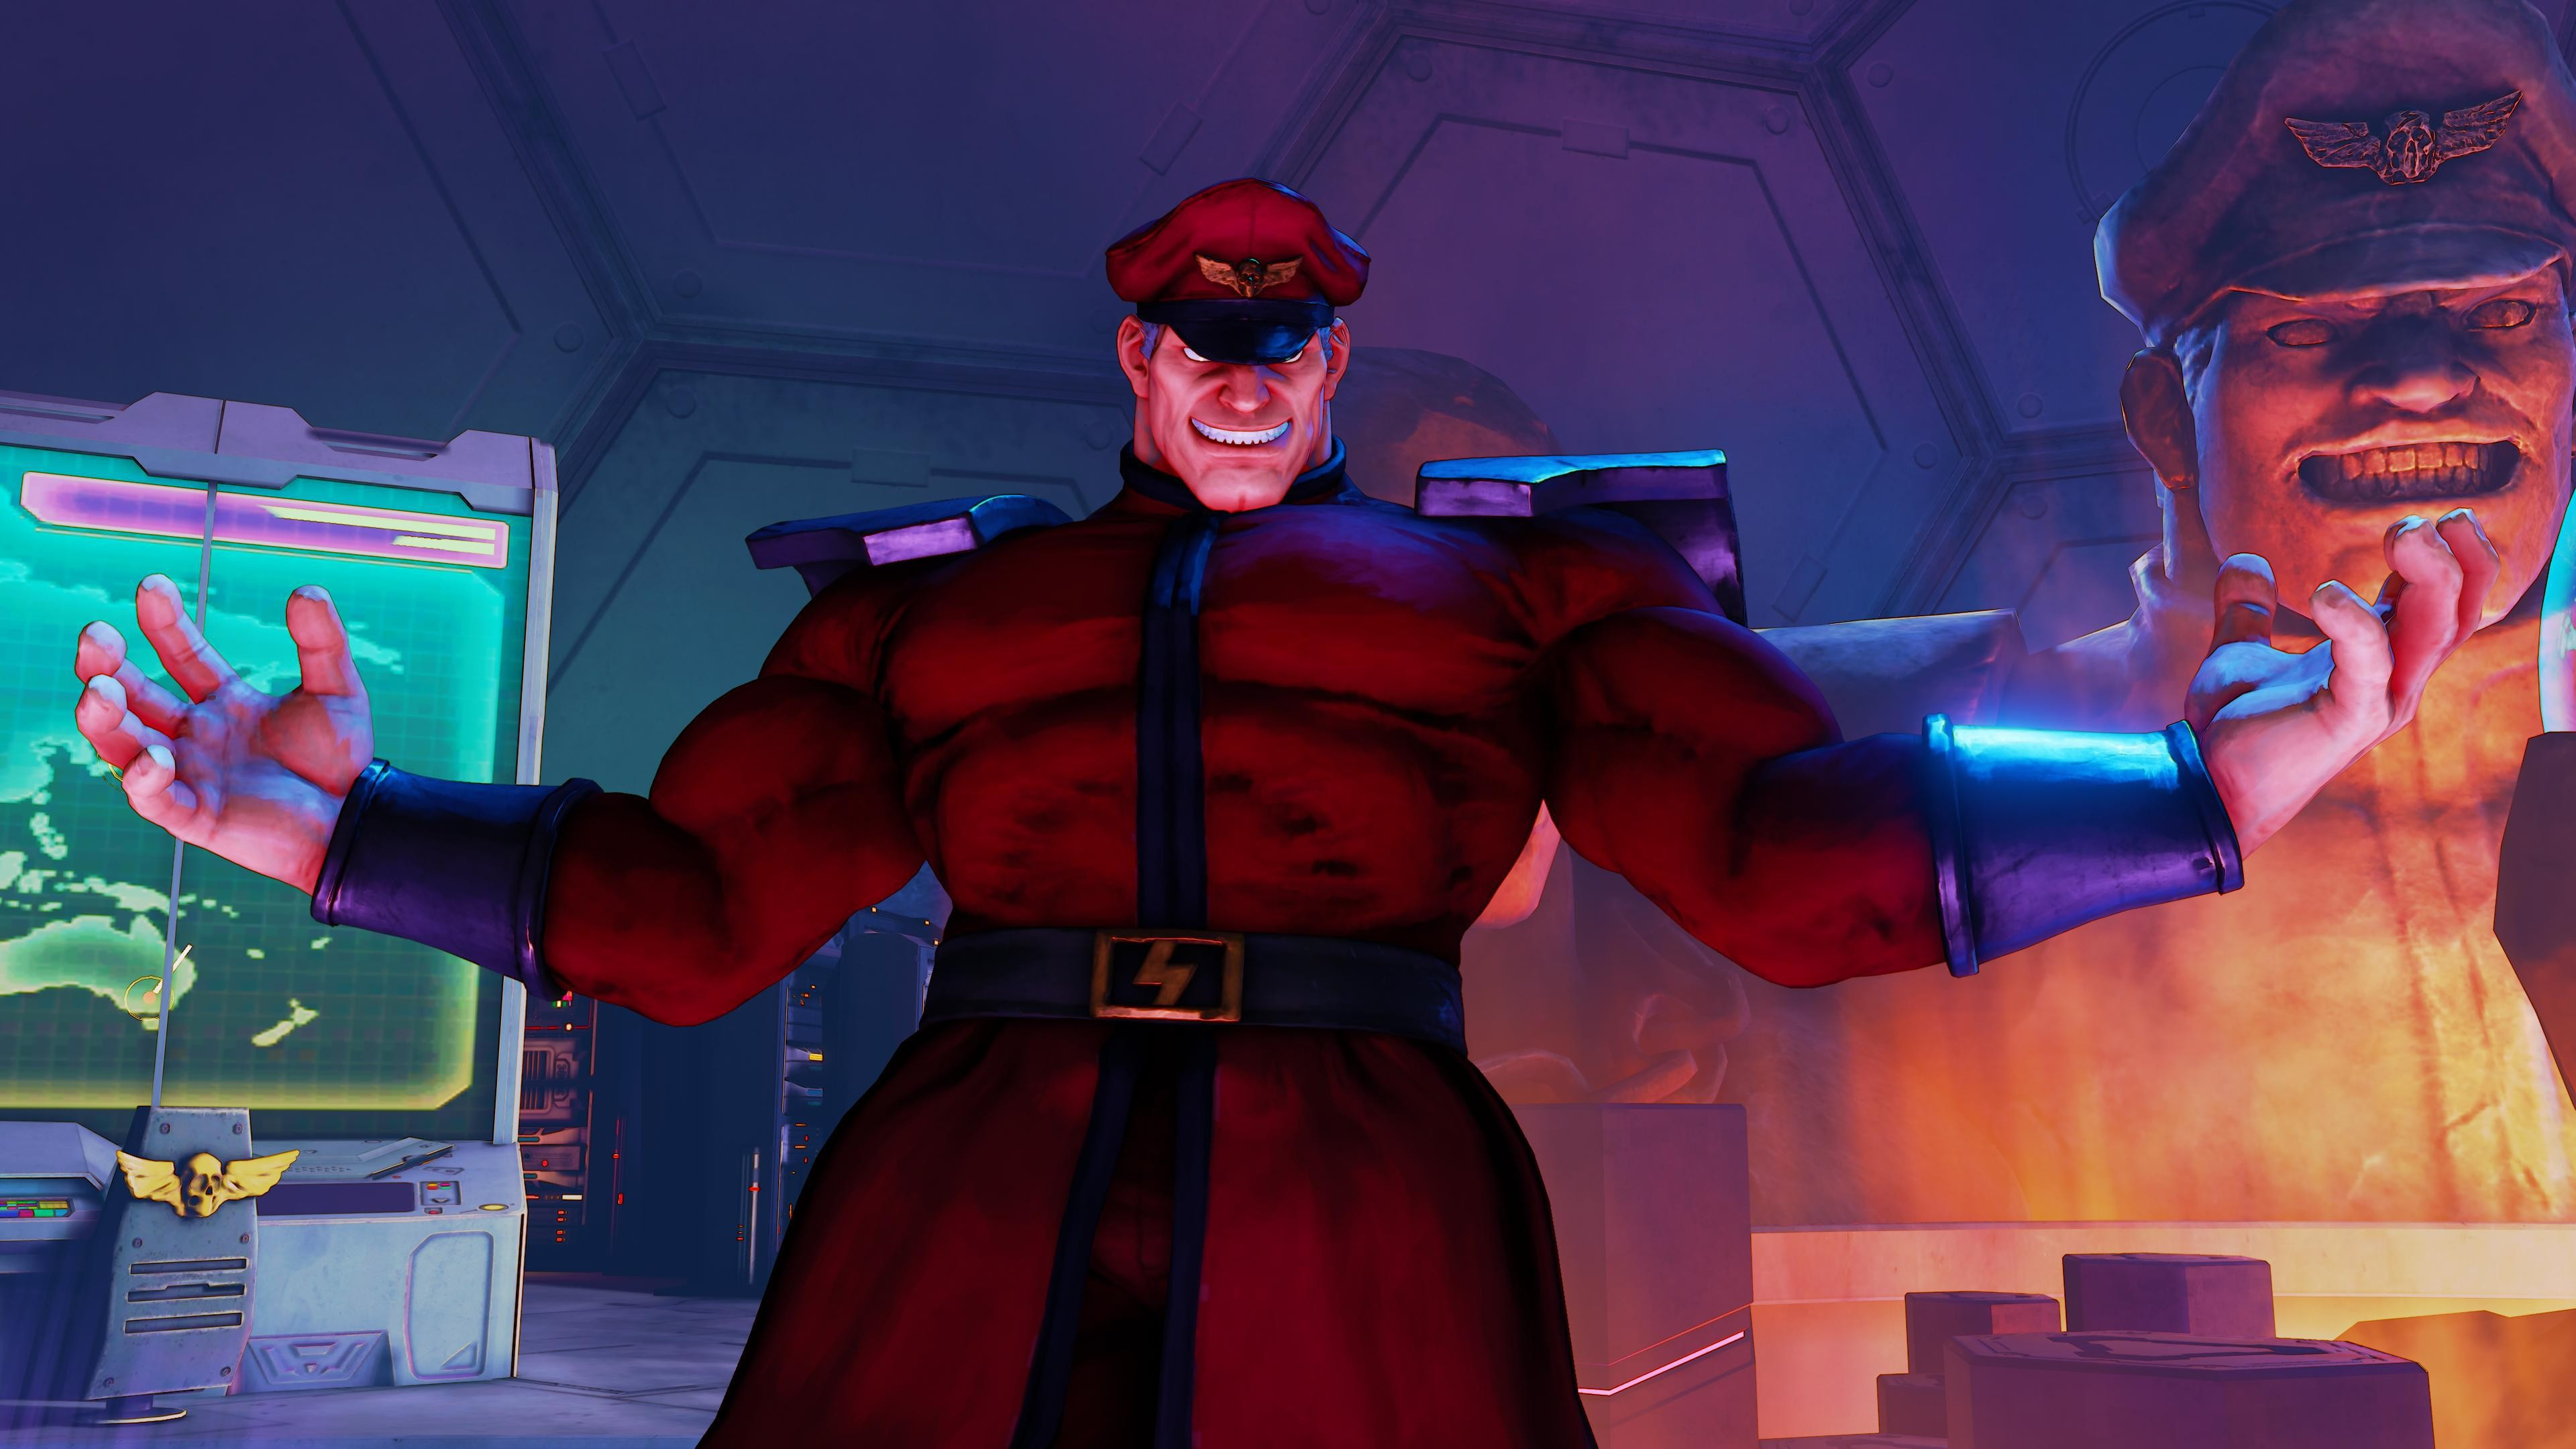 Wallpaper Street Fighter 5, M. BISON, Best Games, fantasy ...